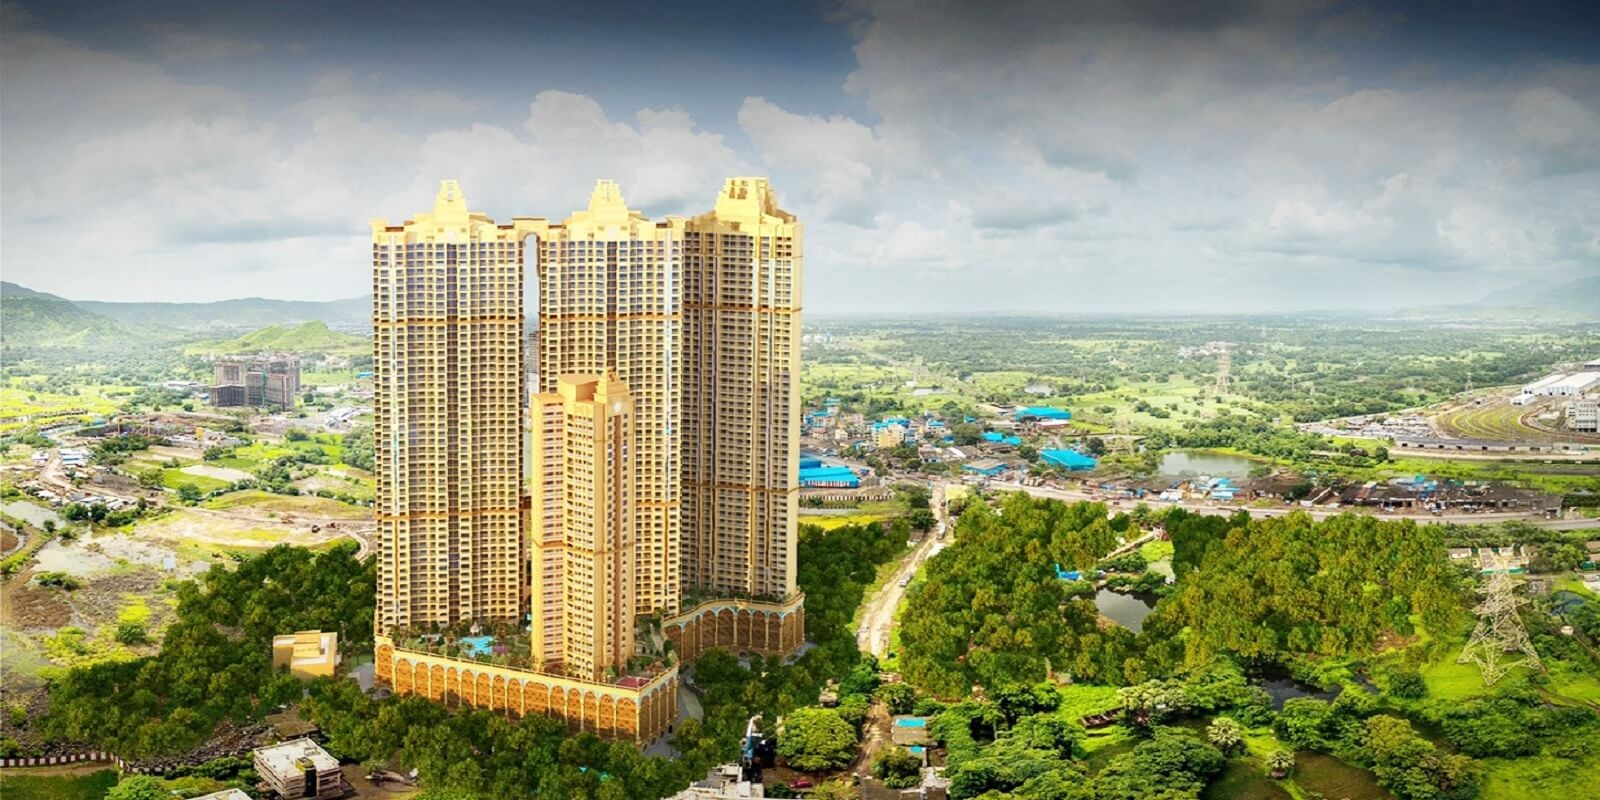 arihant clan aalishan phase 2 project large image2